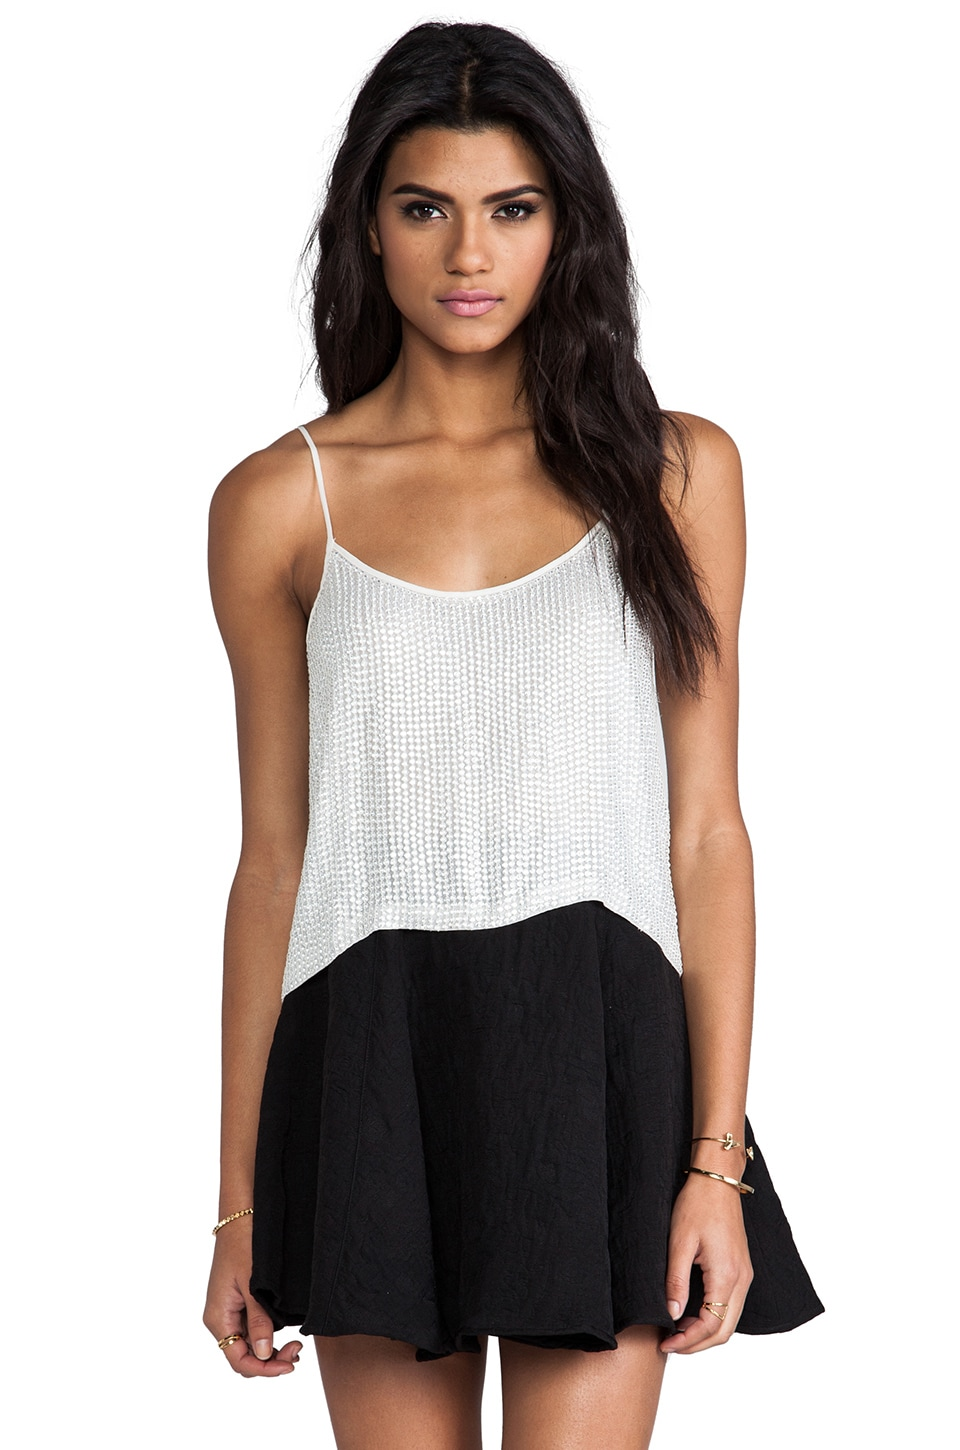 MLV Whitney Beaded Top in White